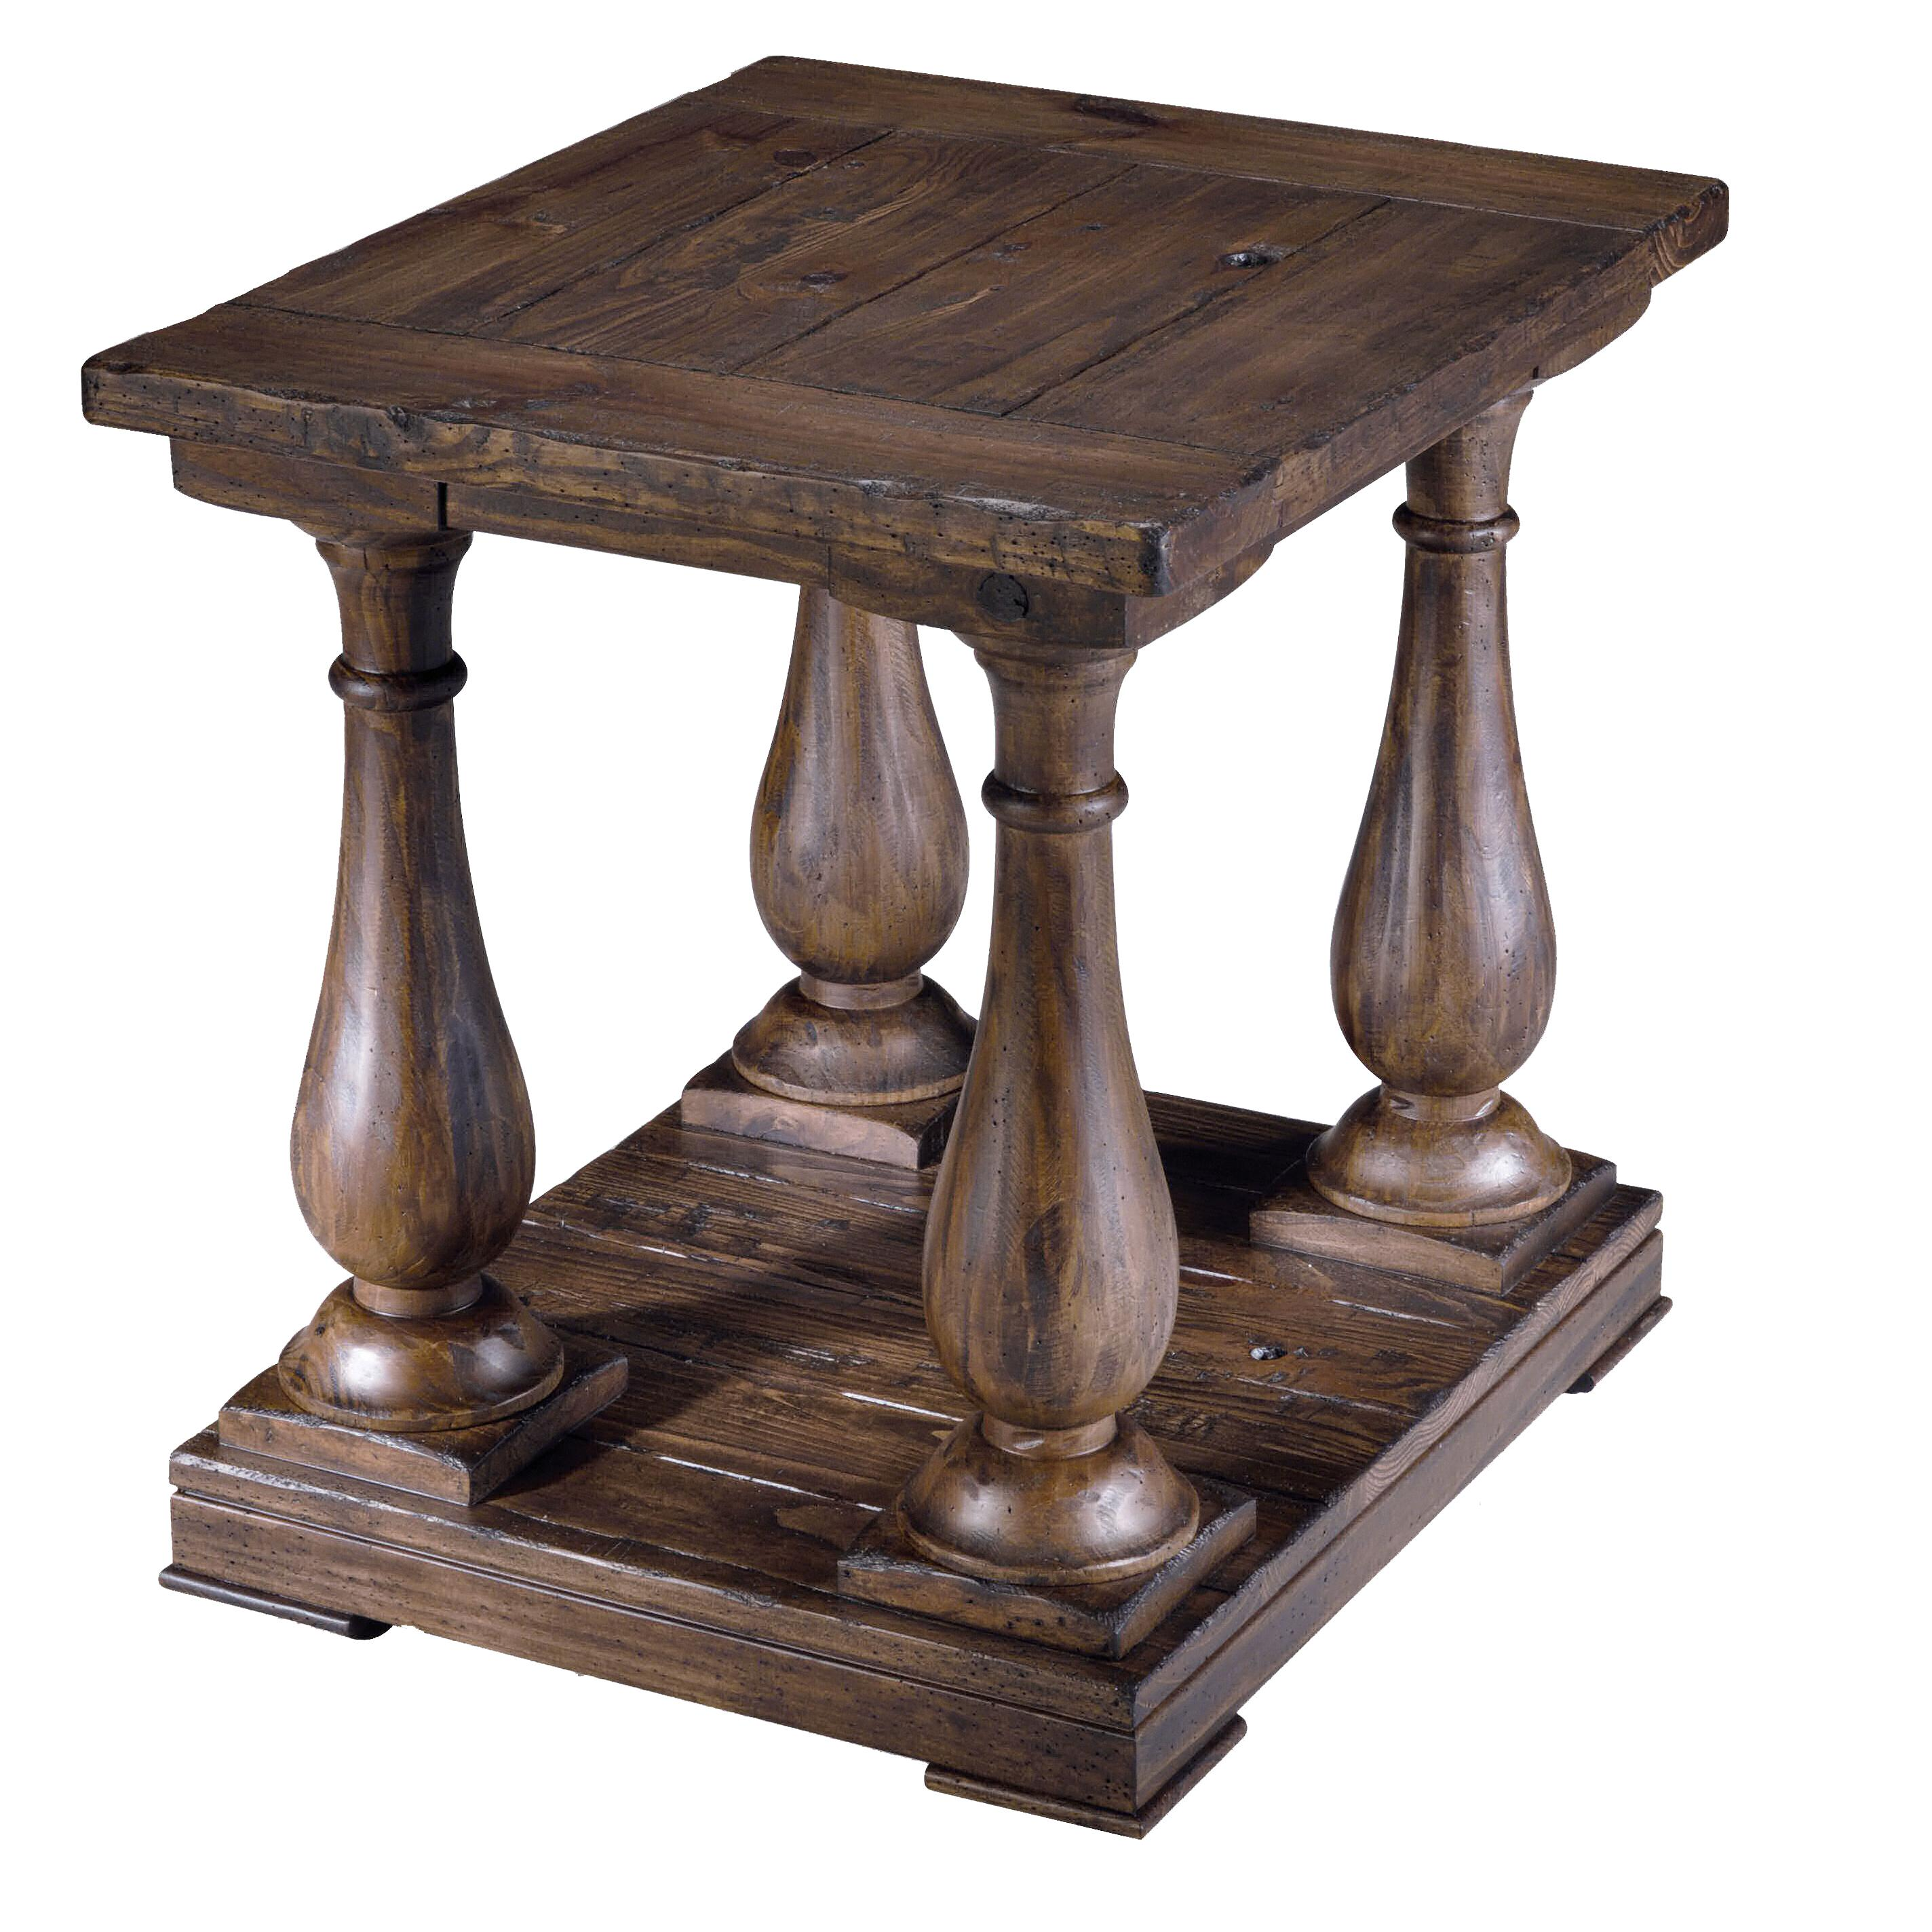 rectangular column end table magnussen home wolf and gardiner products color densbury accent square round cherry timber furniture brisbane one drawer side dining room runners